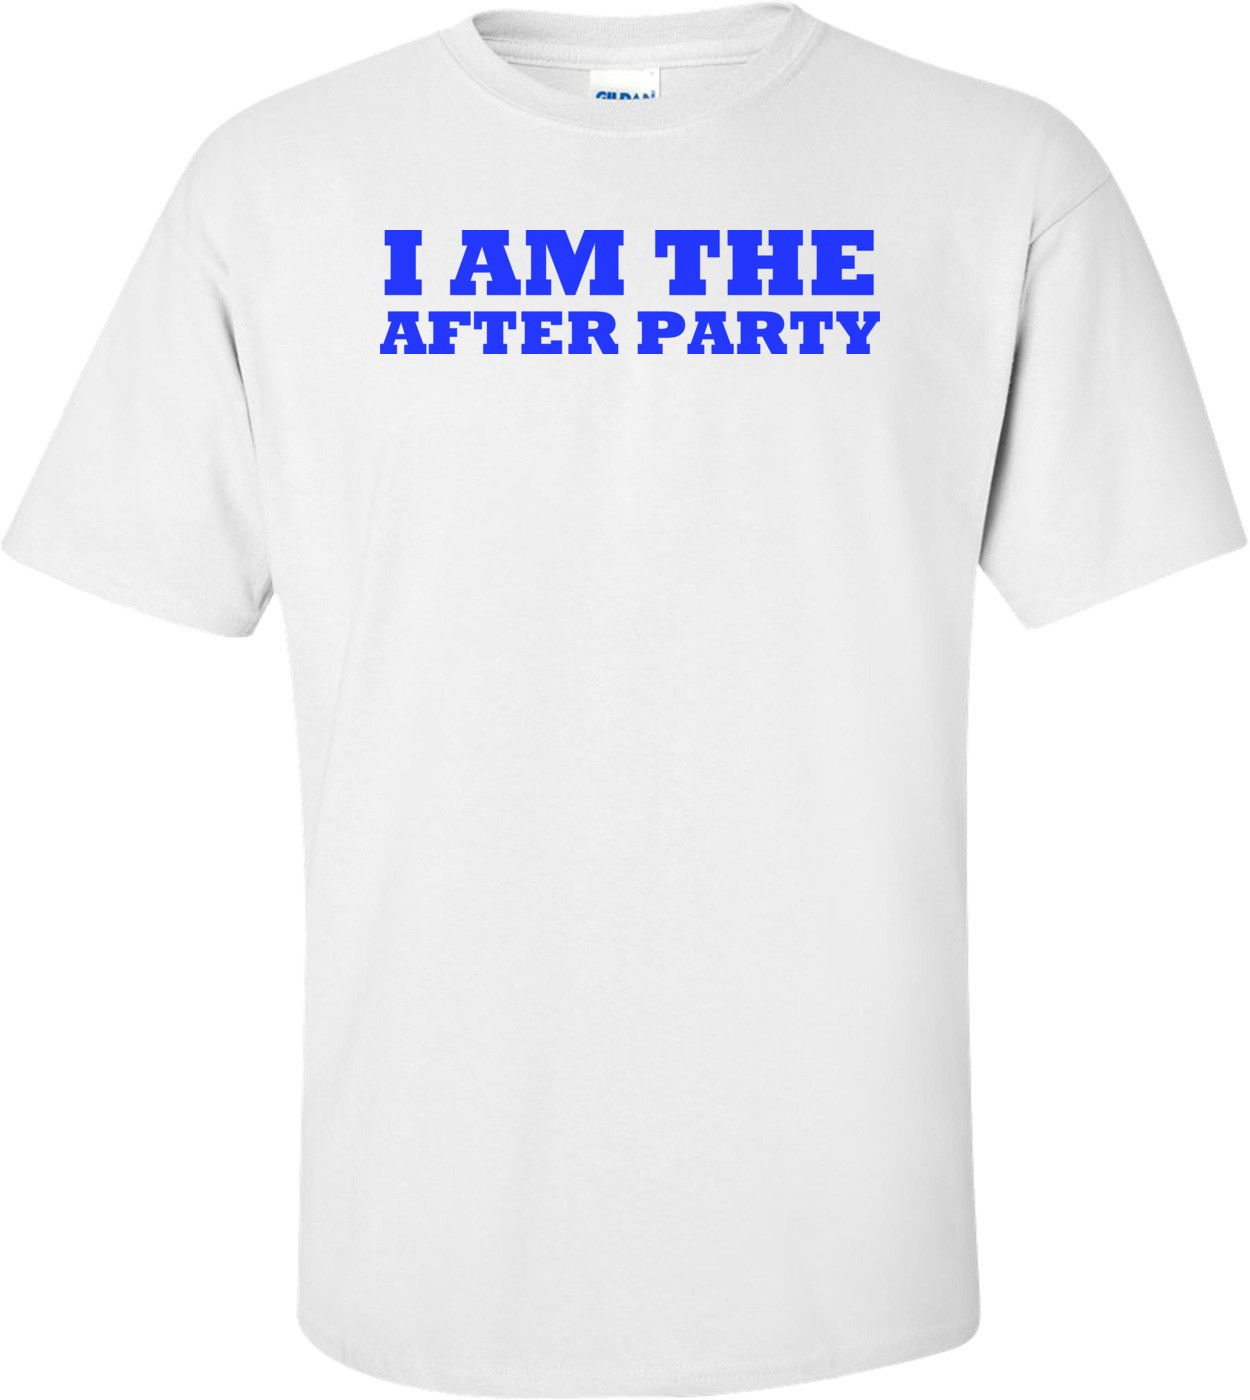 I Am The After Party Shirt